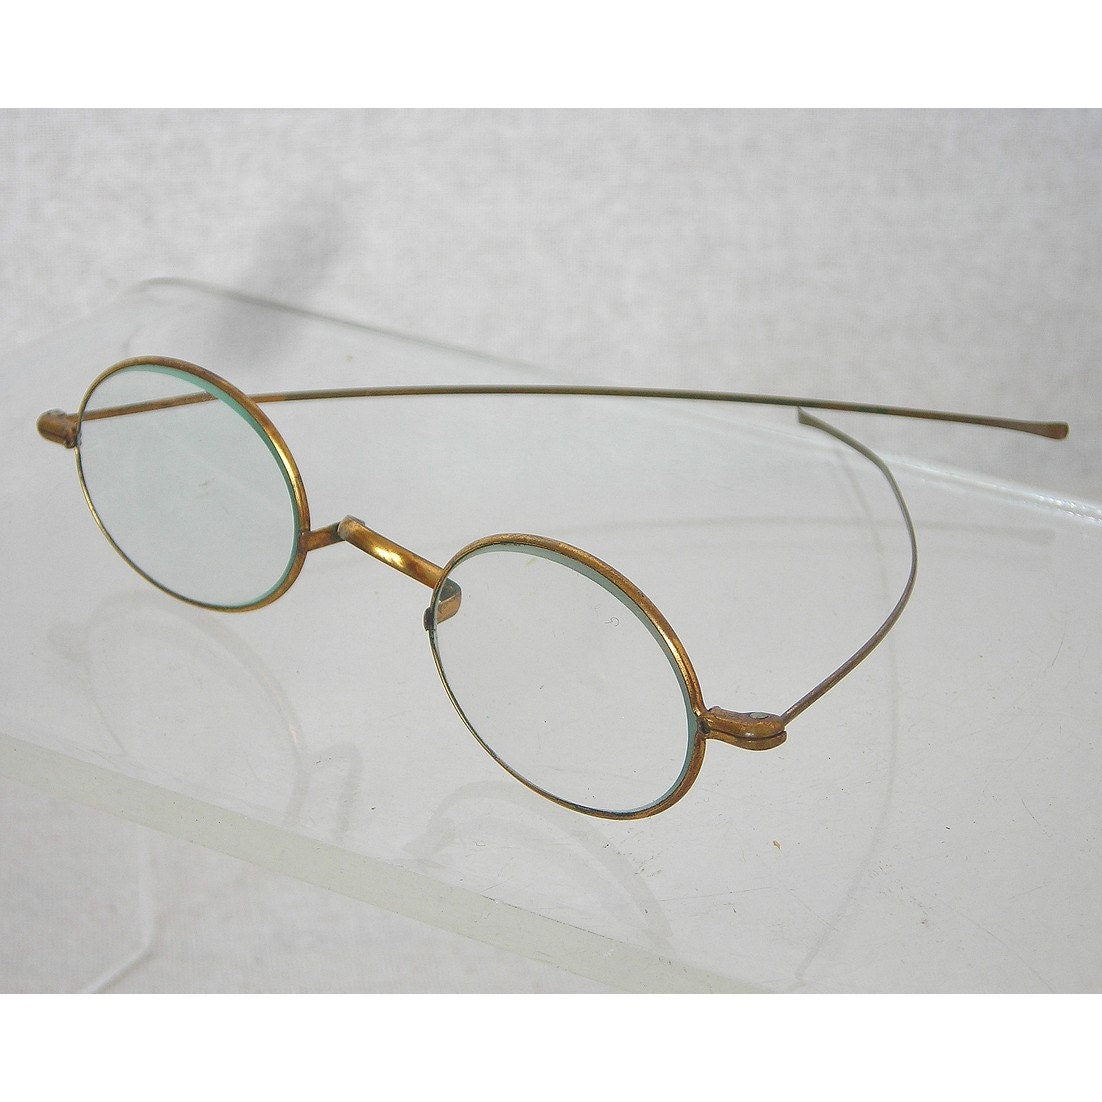 1800 two pair glasses $5000